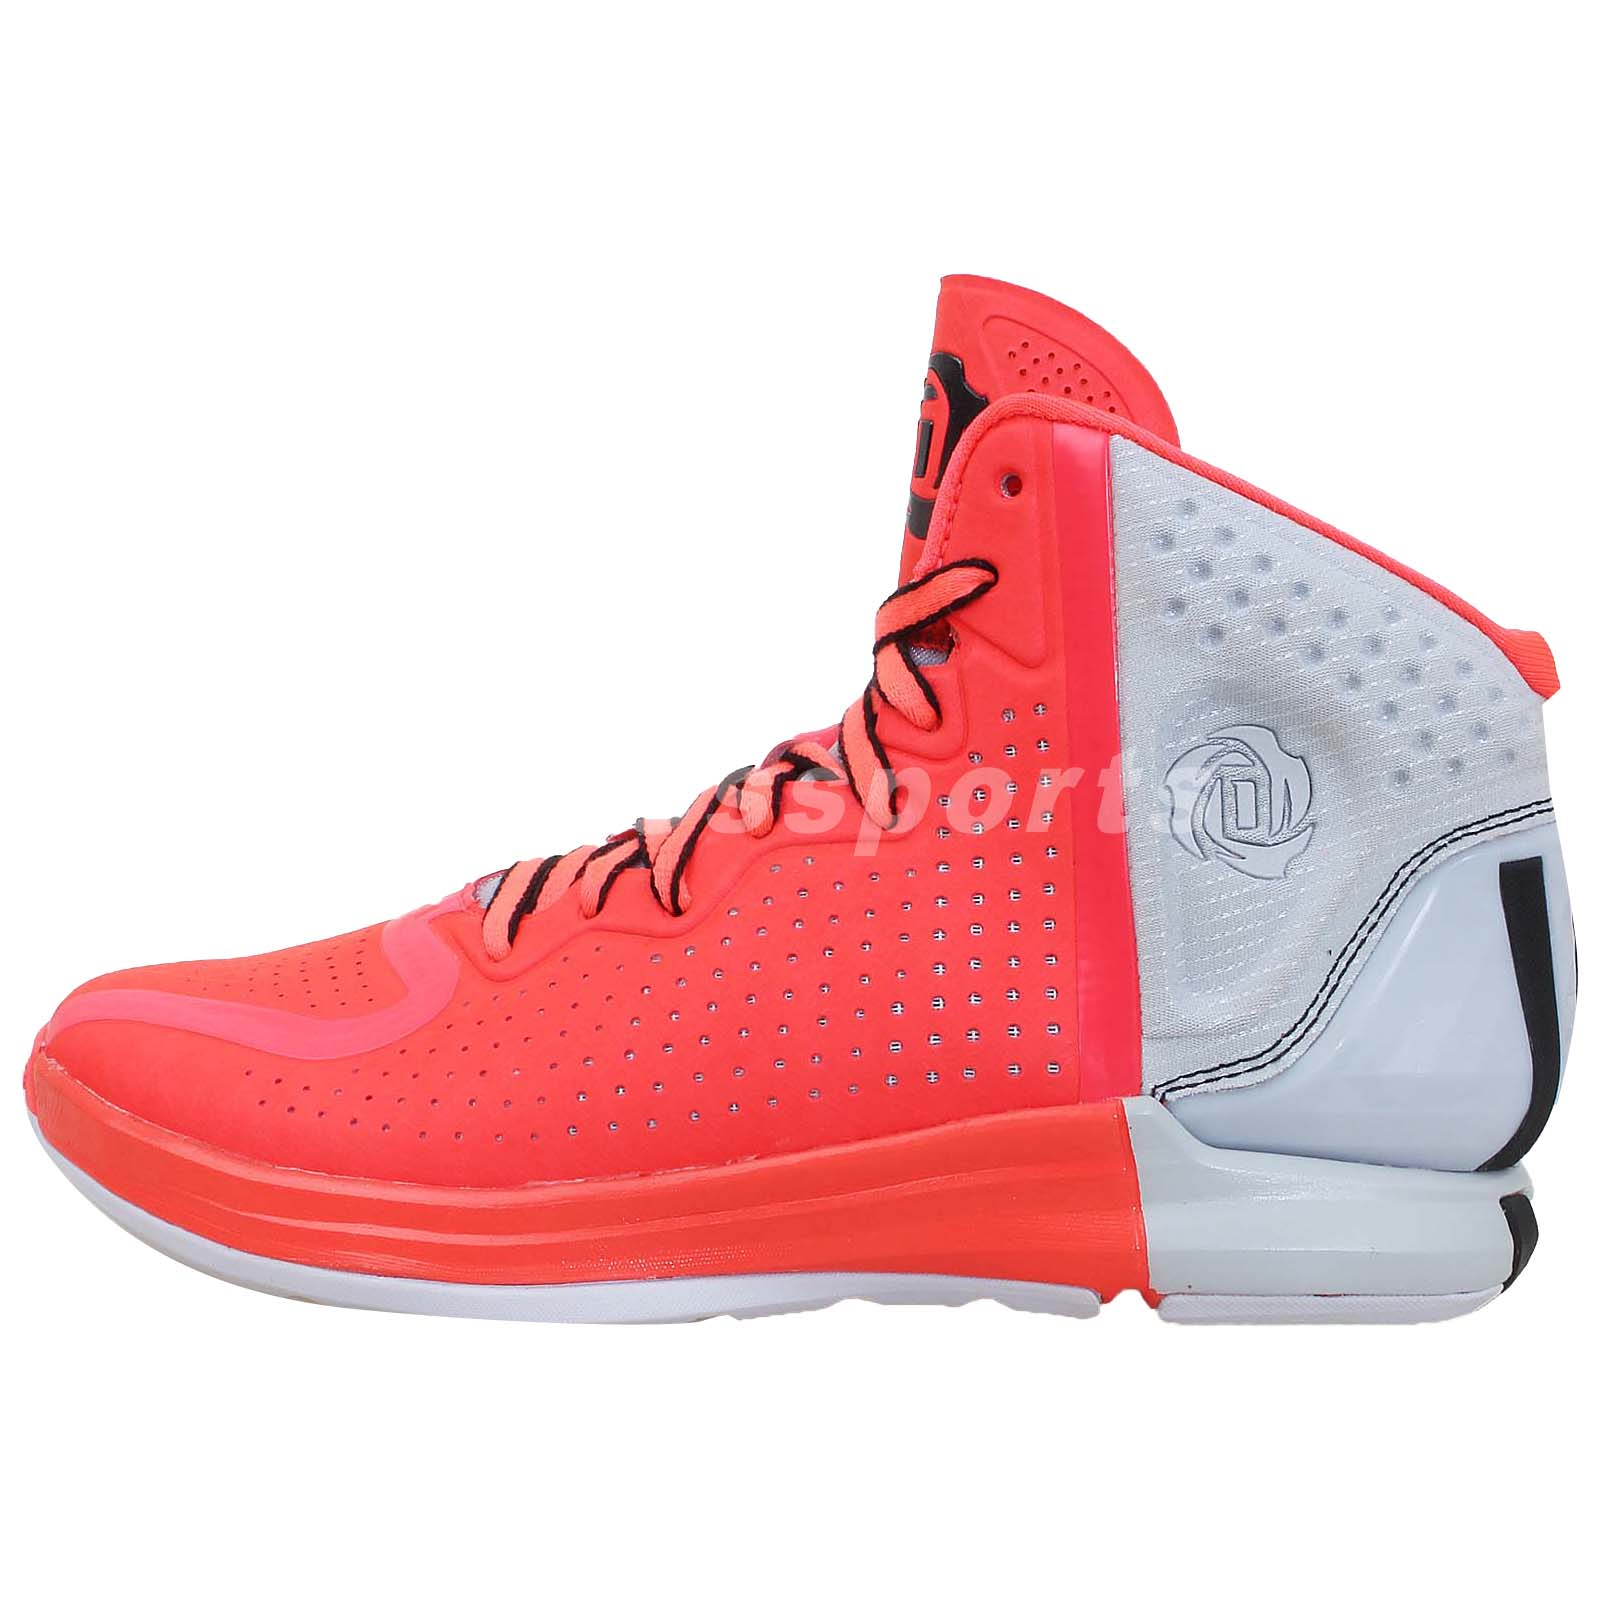 Buy d rose christmas shoes   OFF62% Discounted 51e1d279a447